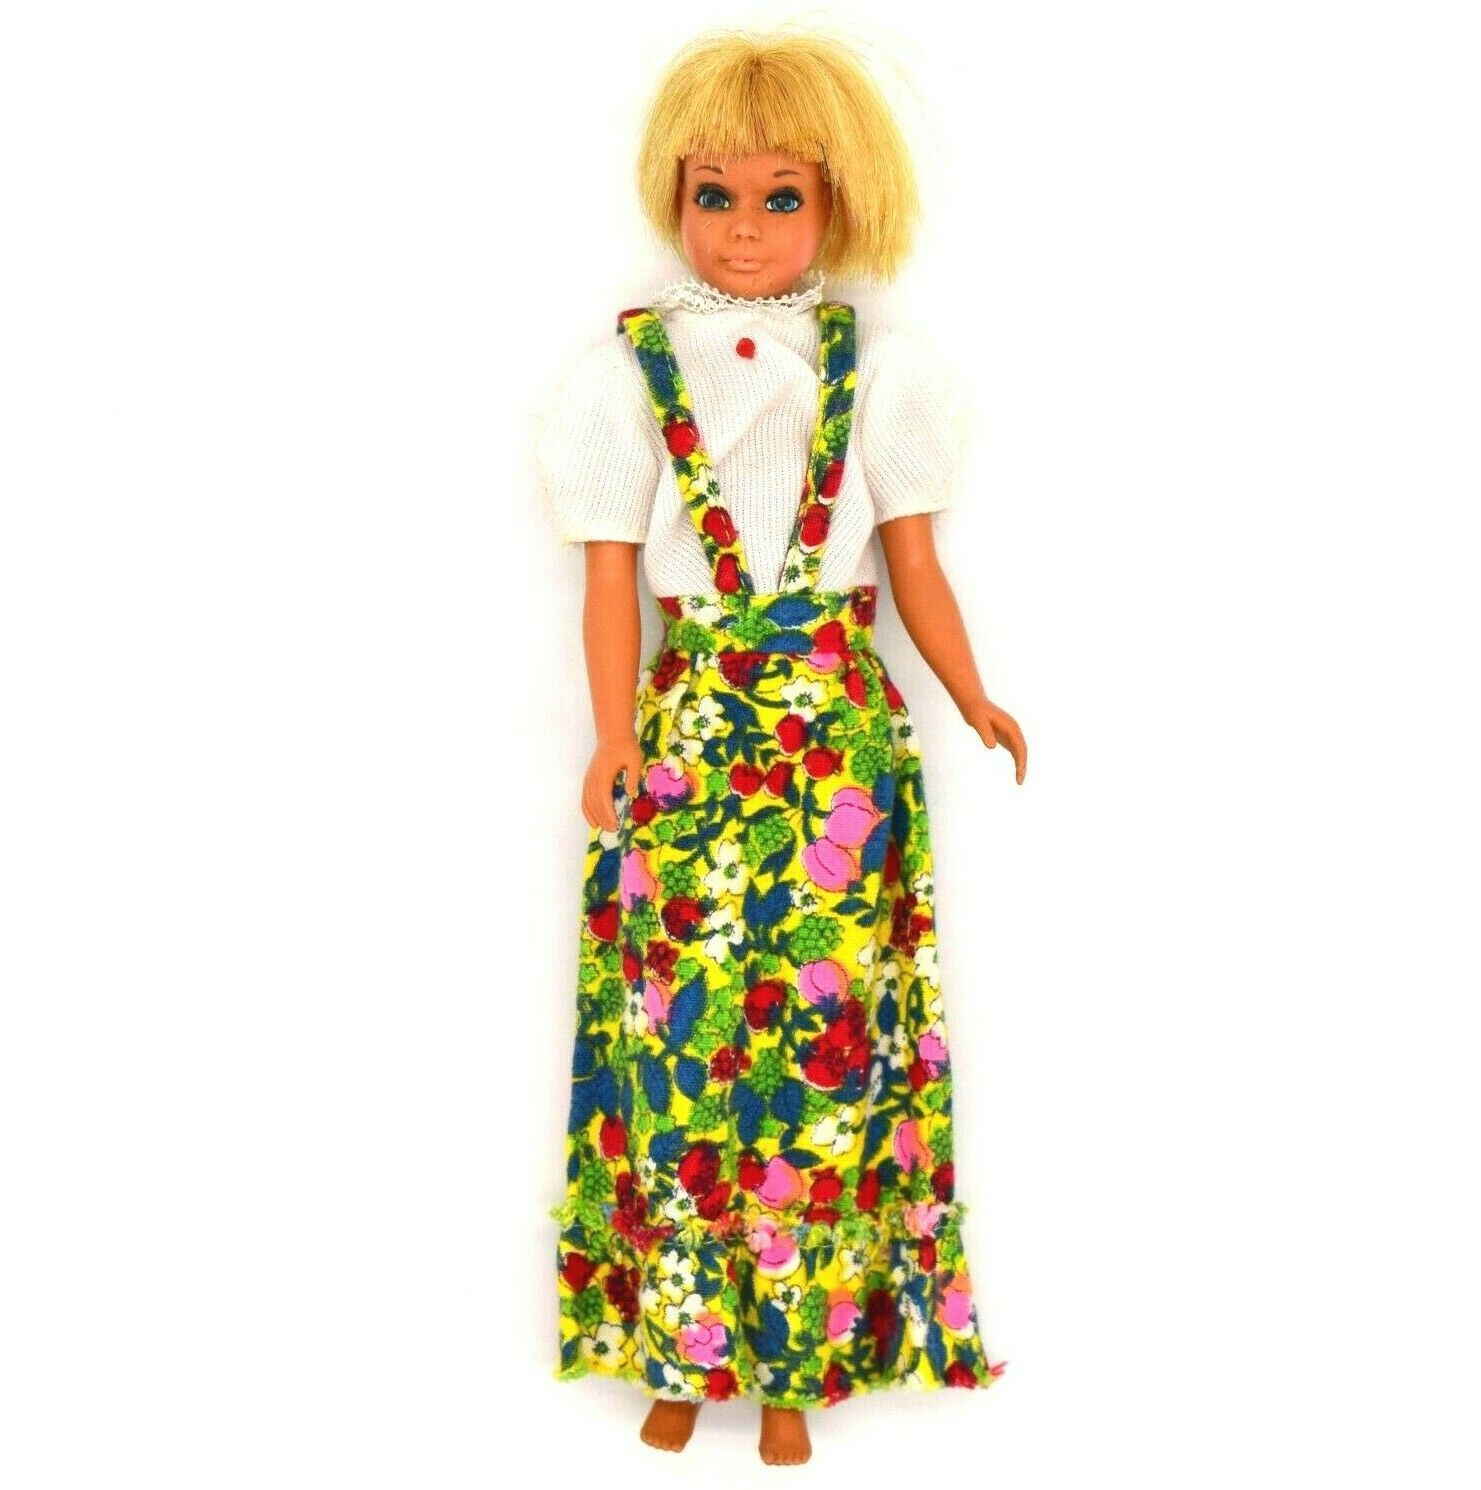 Primary image for Vintage Mattel 1967 Barbie Doll Short Blond Hair Blue Eyes 9 inches Collectibles